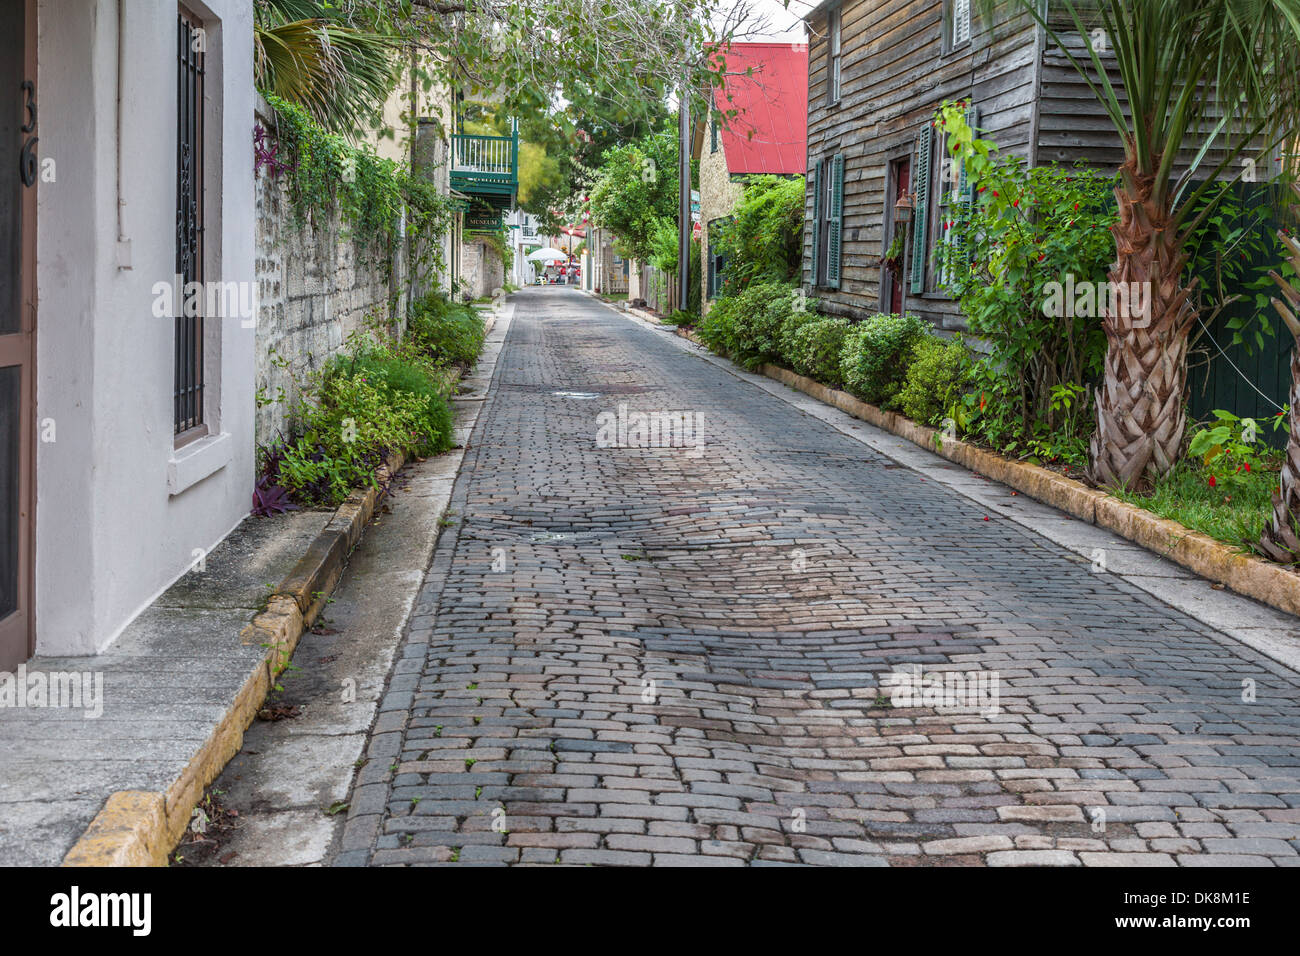 Residential brick paved street in the historic district of downtown St. Augustine, Florida - Stock Image